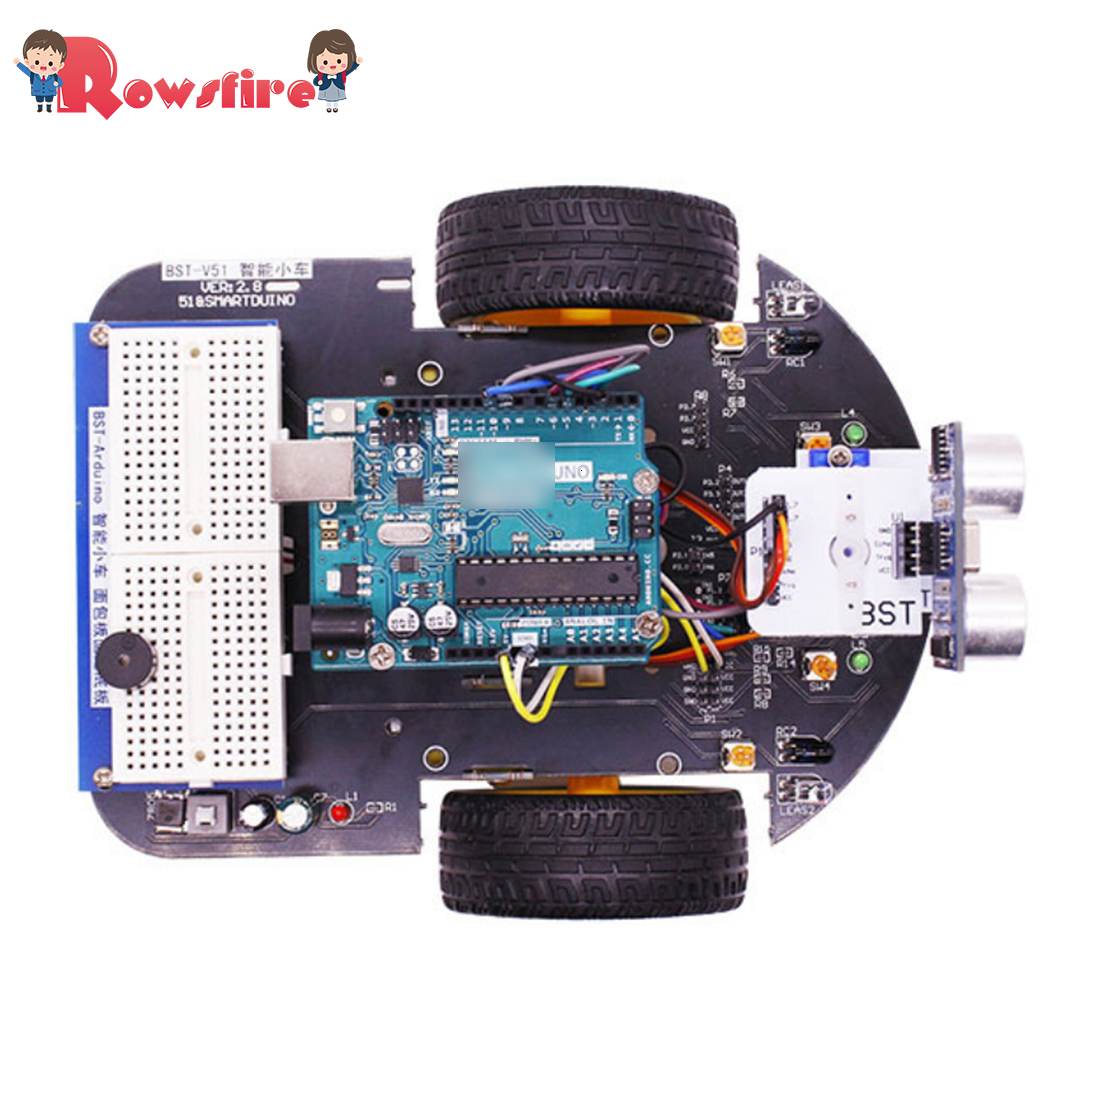 2-In-1 Project Super Starter Kit Smart Robot Car With Tutorial Programme Toys For Arduino With R3 Mainboard Standard Version